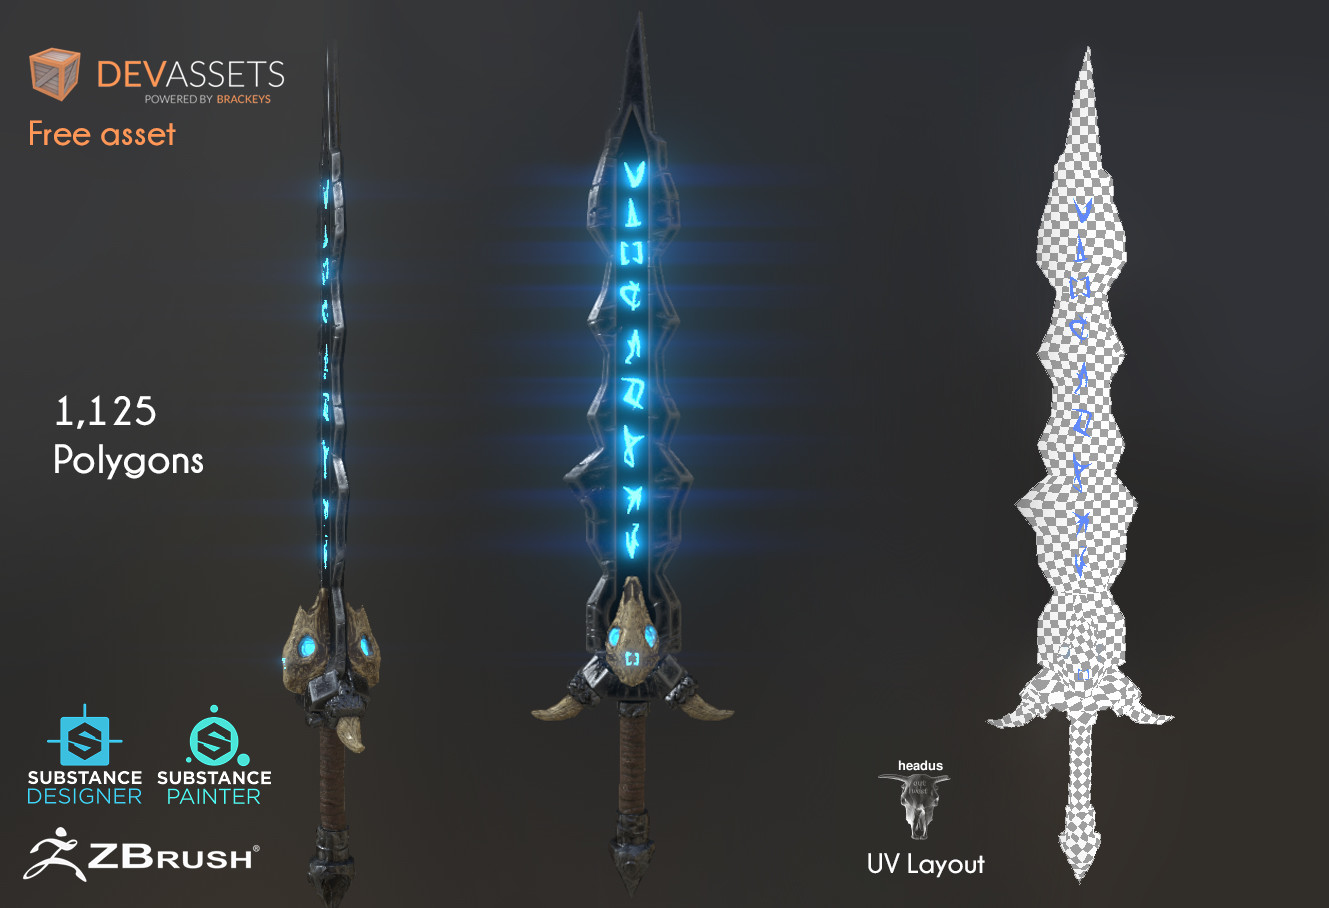 ArtStation - Rune weapons Game assets low poly Download on https